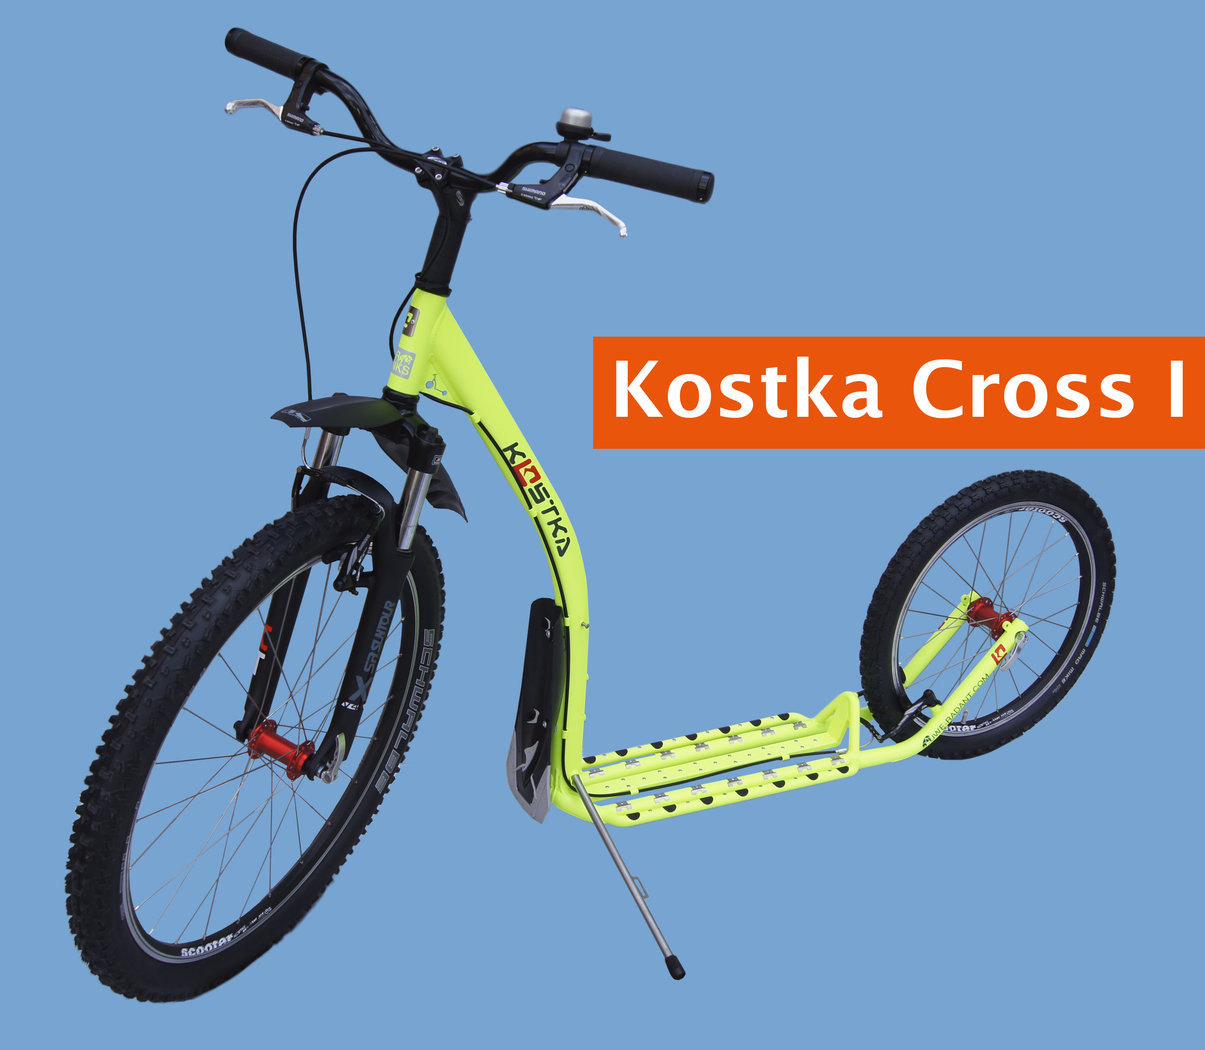 Dogscooter / Tretroller Kostka Fairbanks Cross I